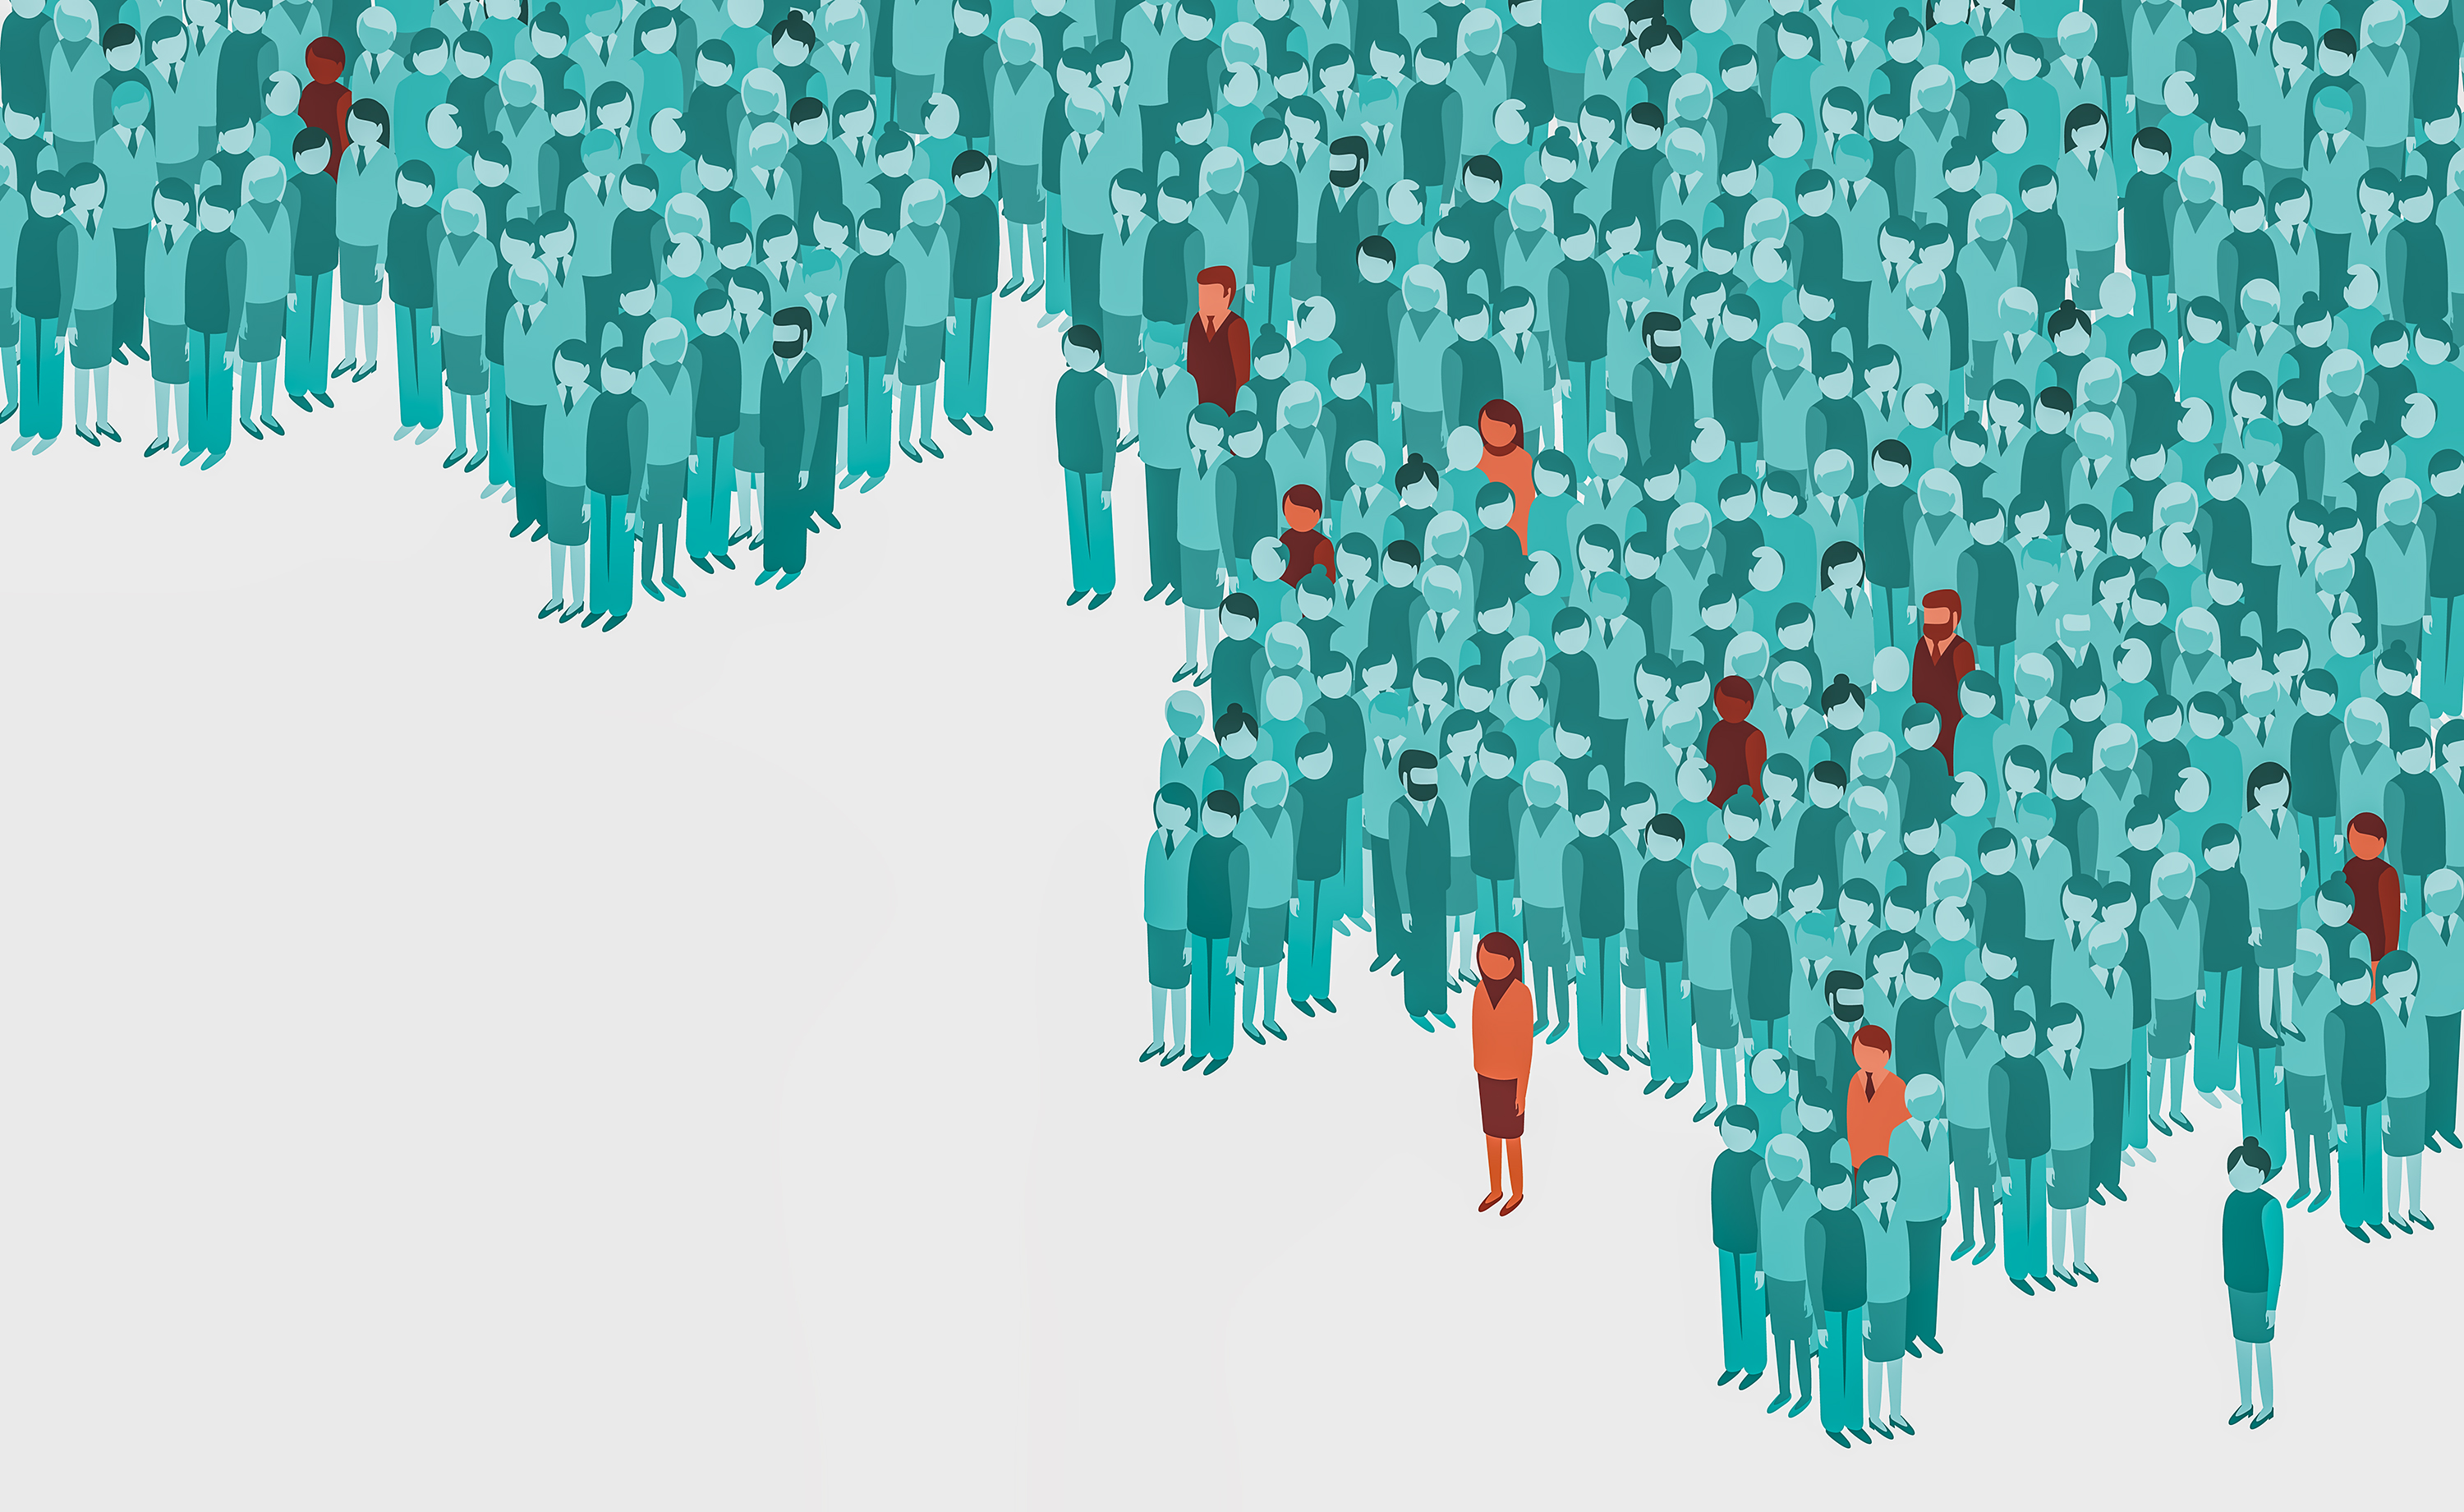 Illustration of single cases ofviral contamination in a huge crowd of healthy people.